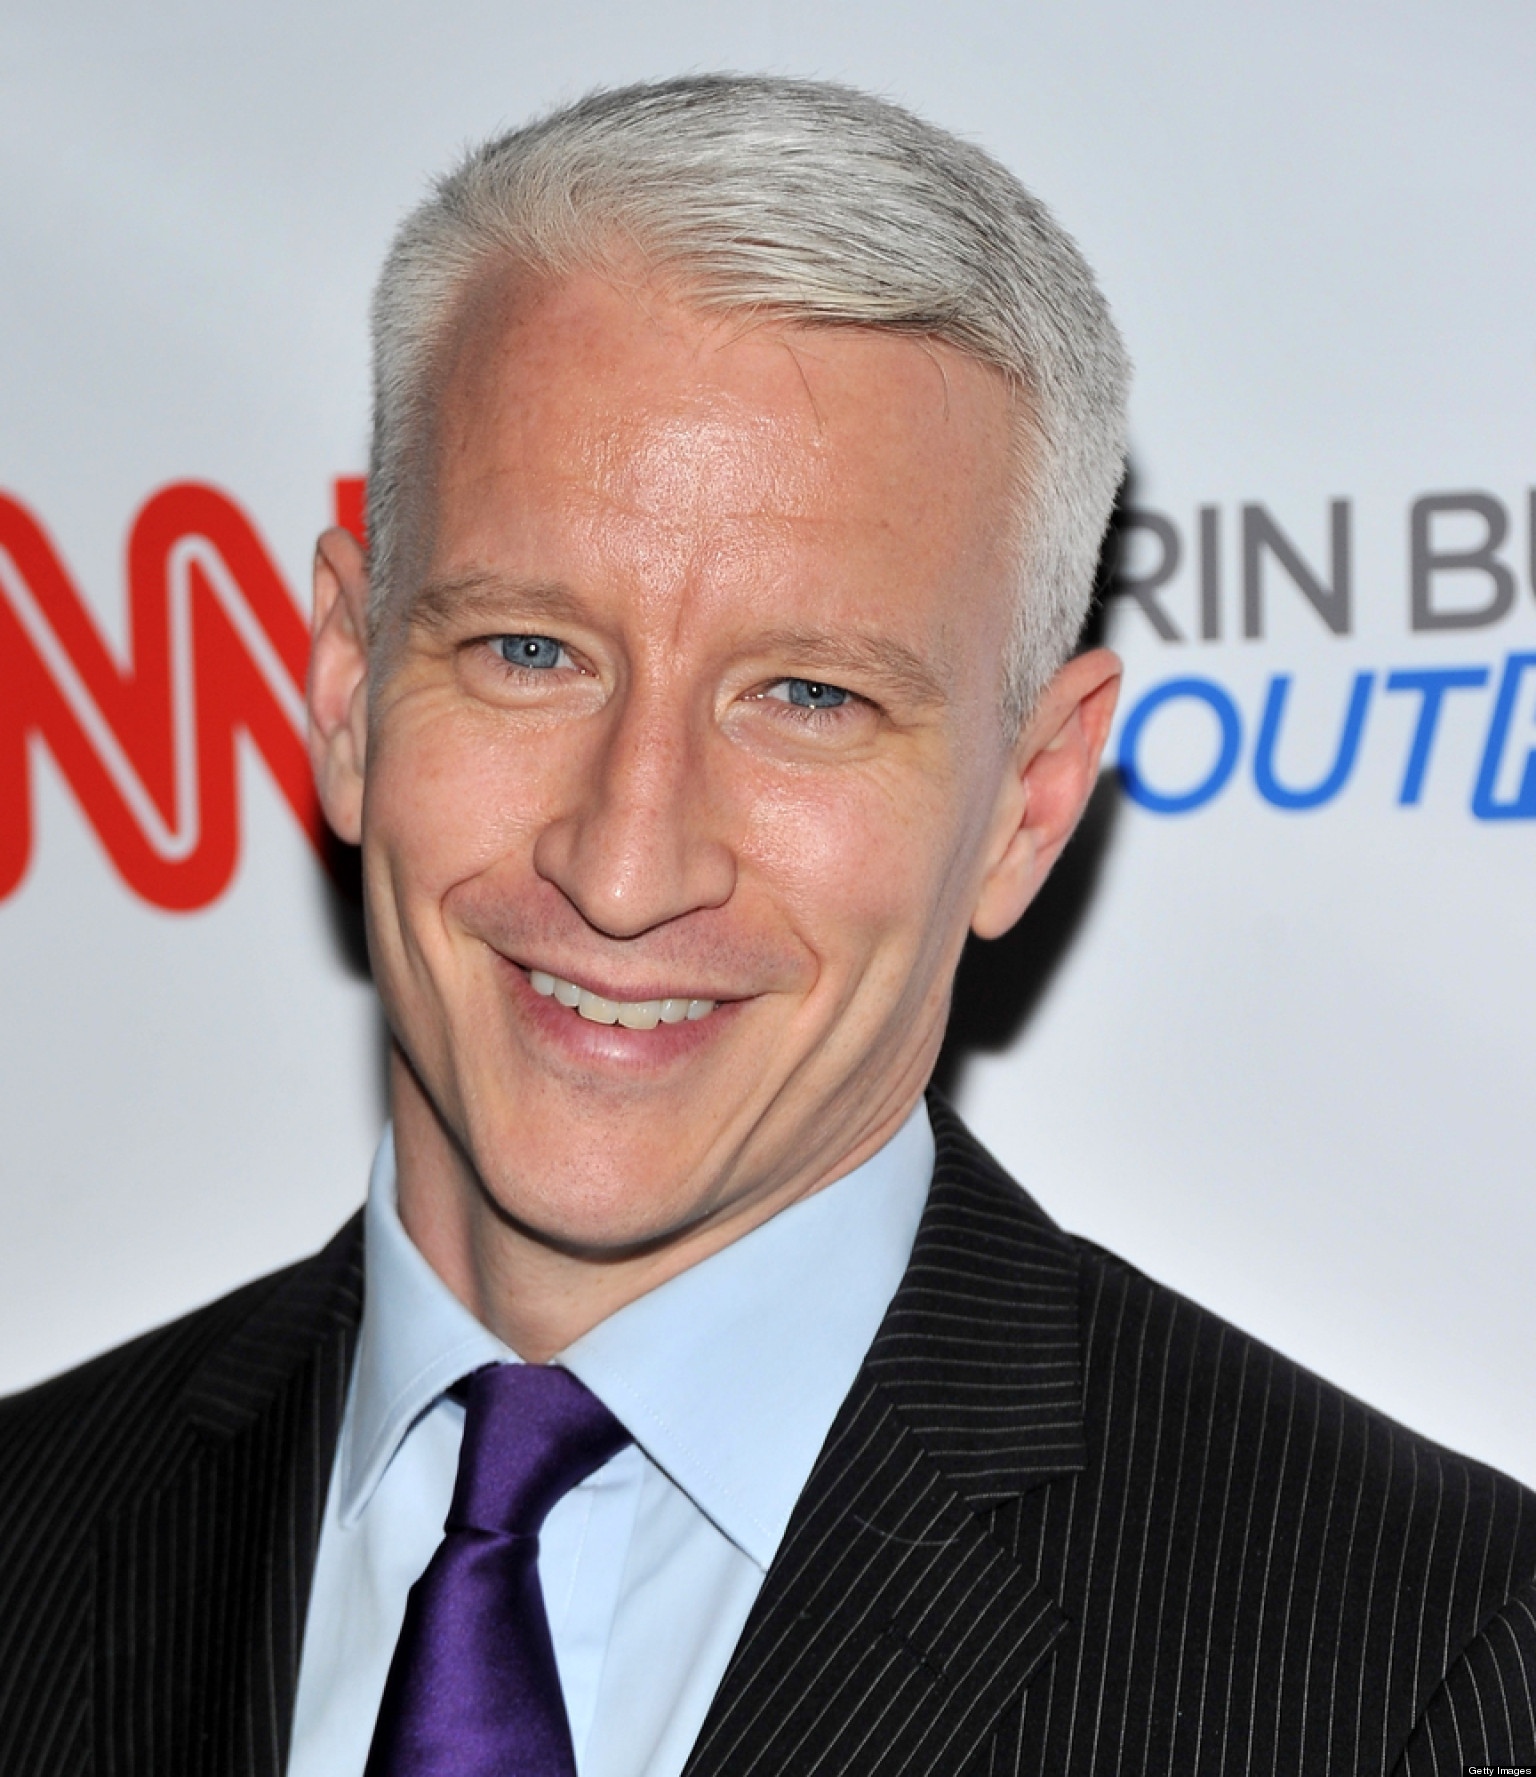 anderson cooper giggling